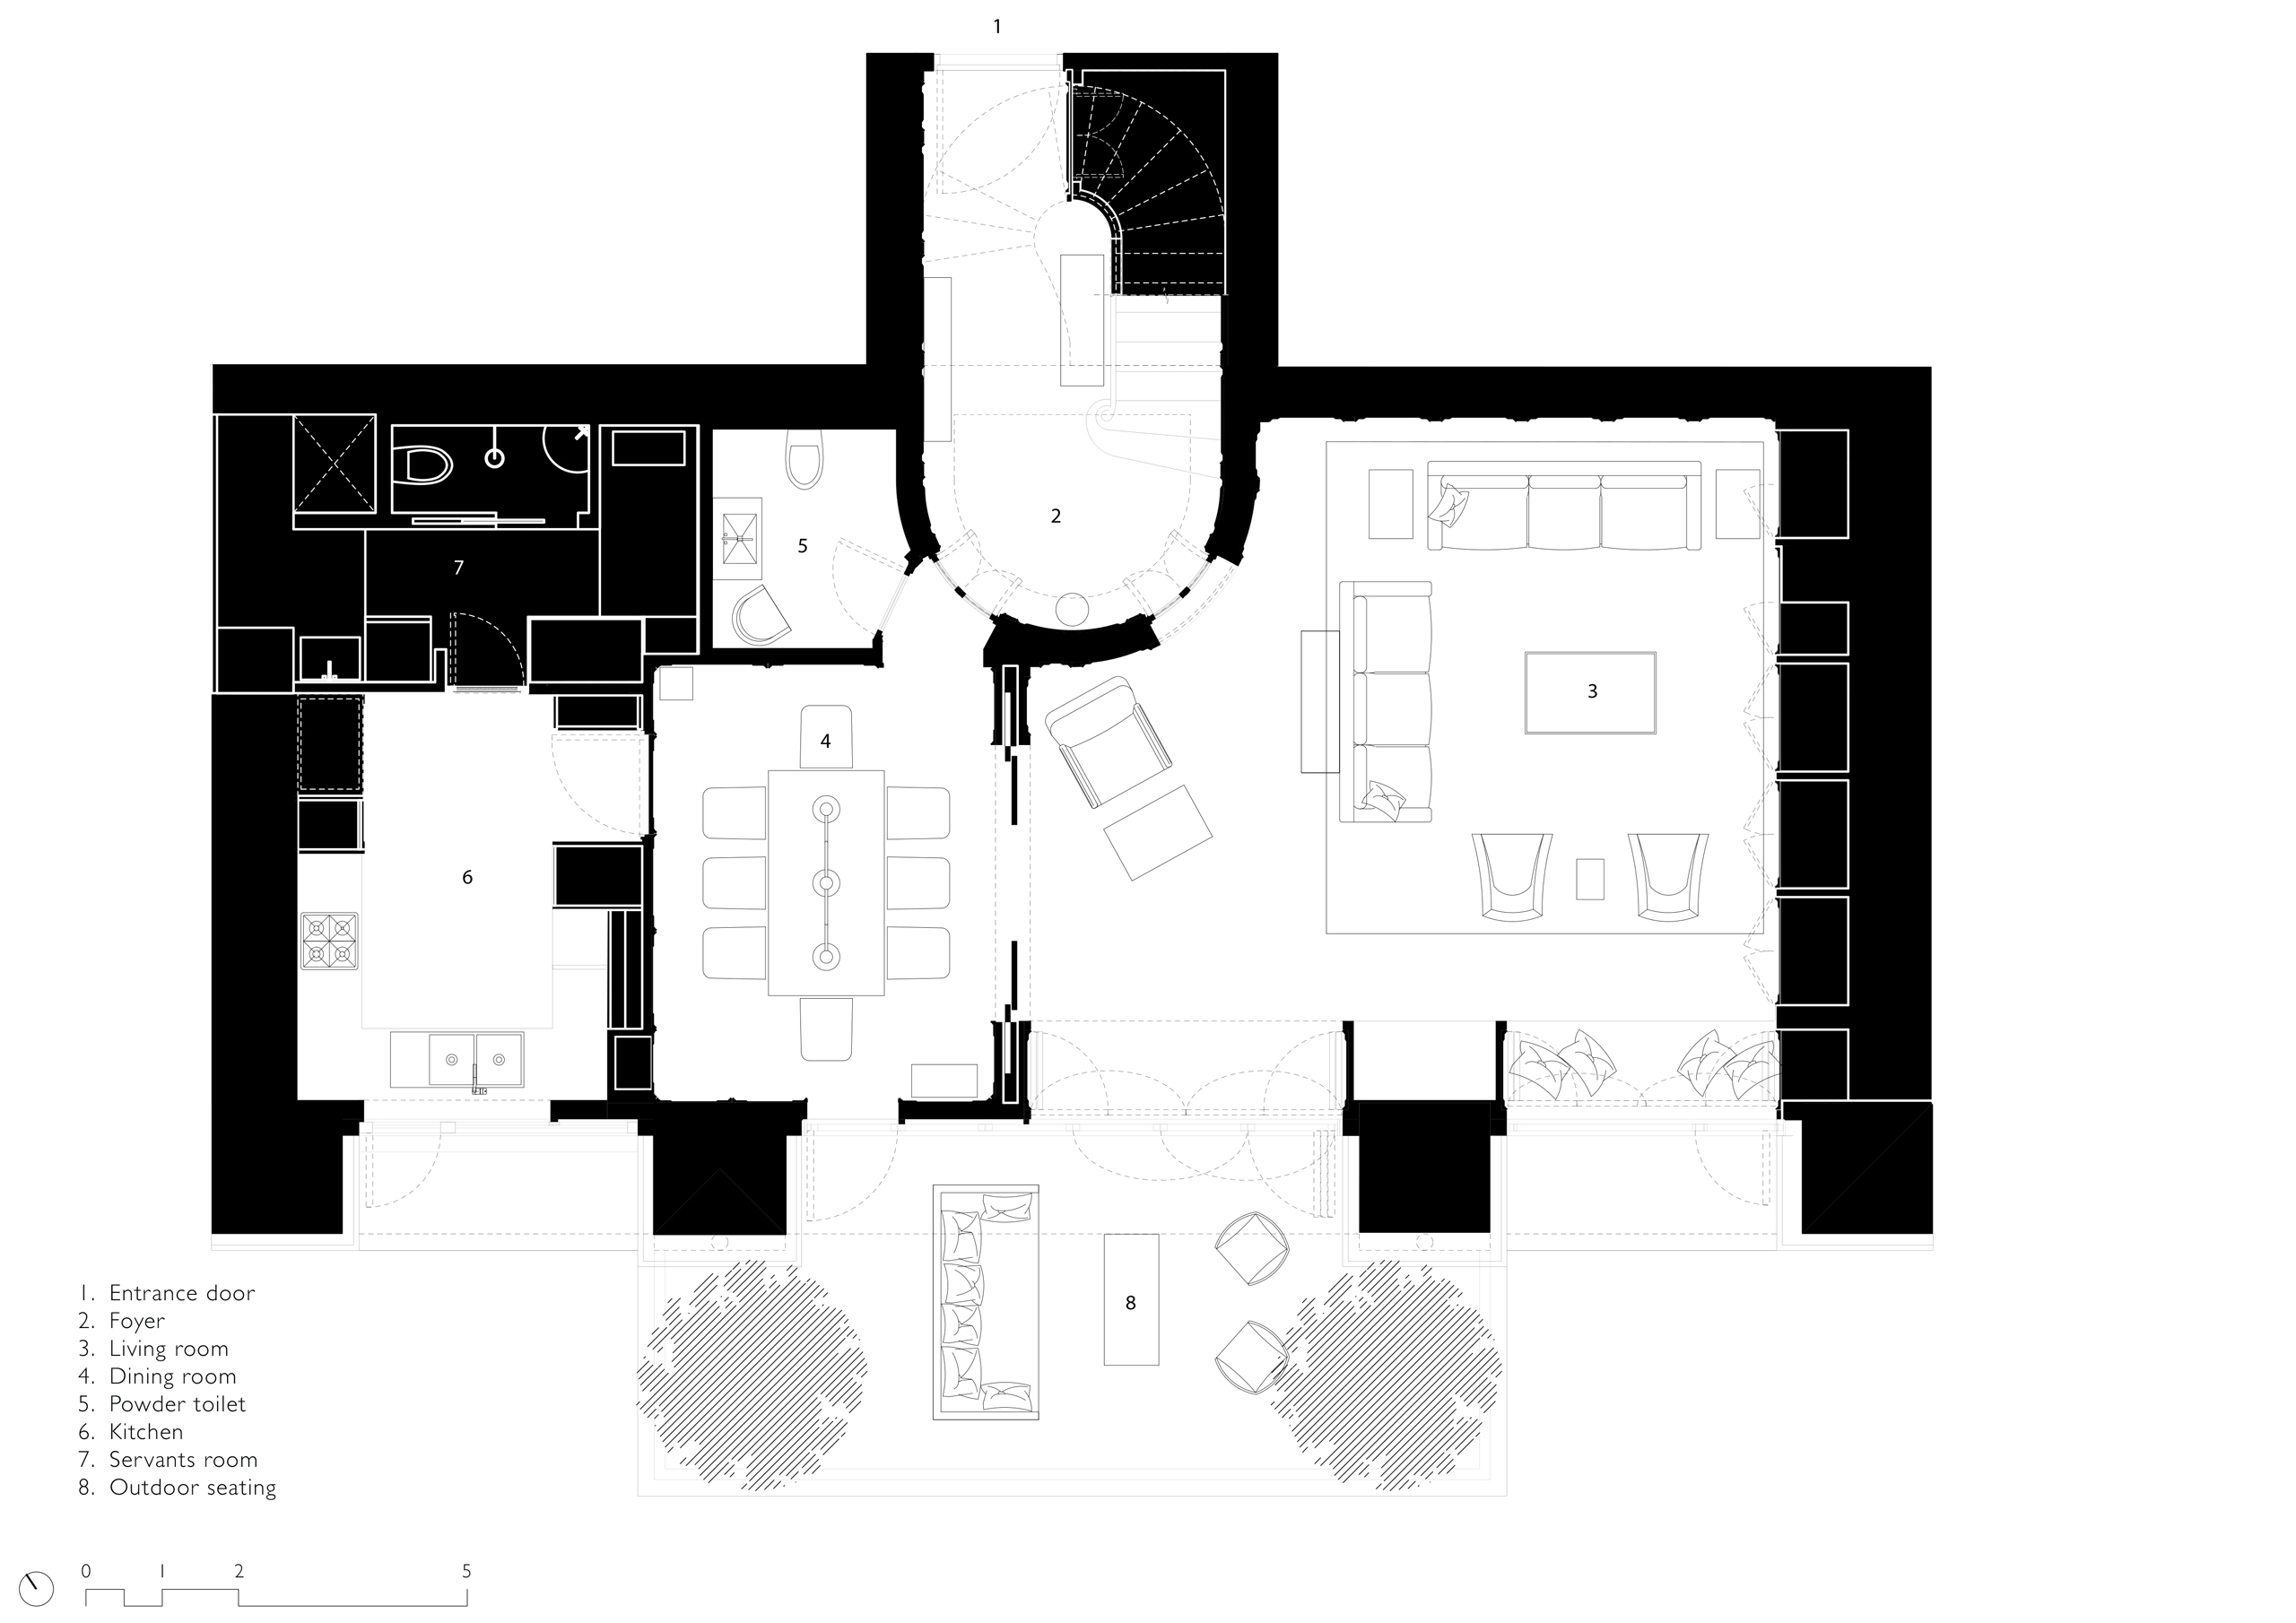 Apartment floor plan in Mumbai